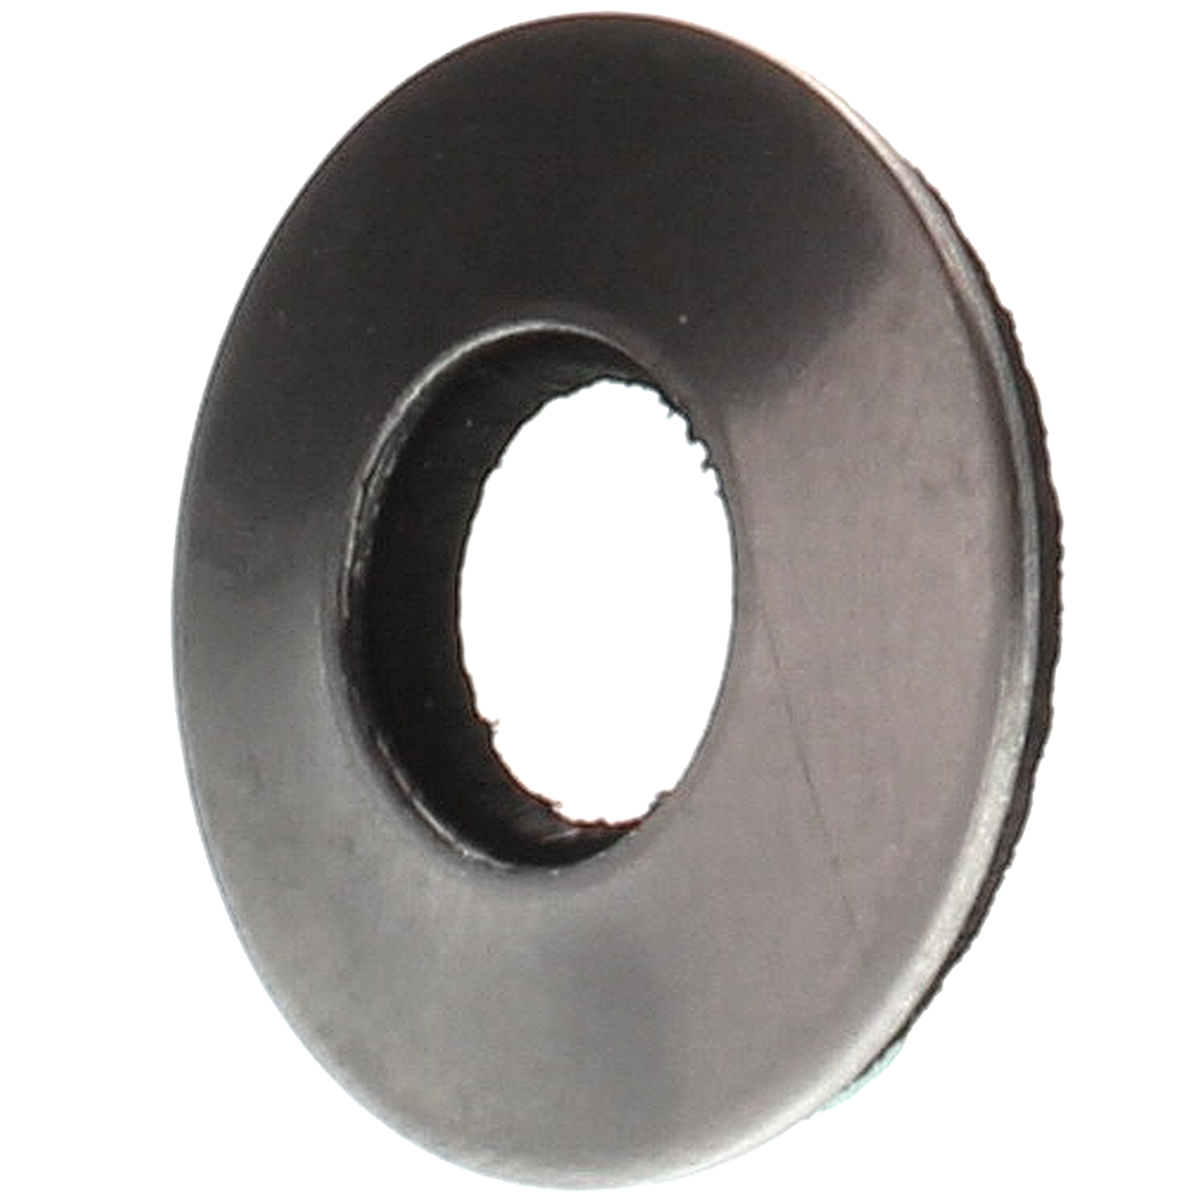 """#14 x 5/8"""" Bonded Sealing Washers — 18-8 Stainless Steel, 100/PKG"""